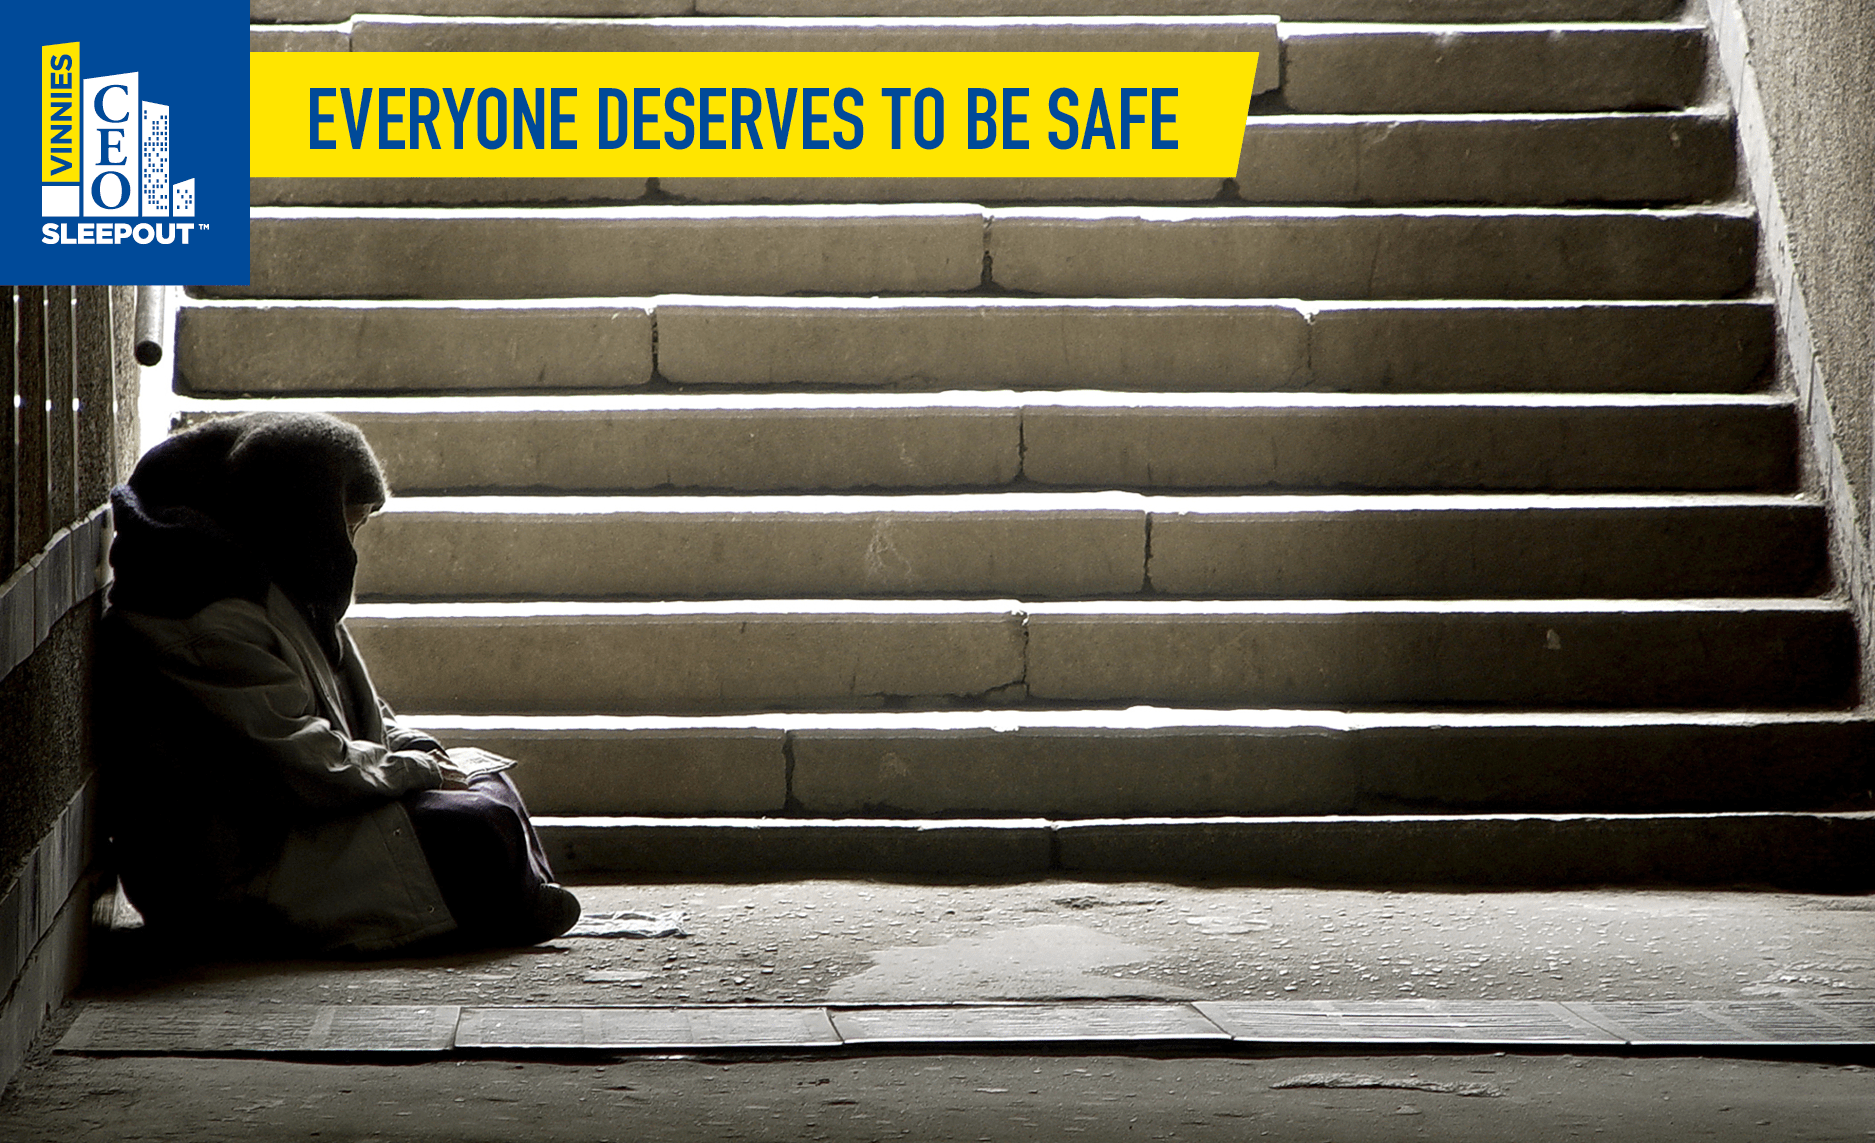 Image:https://www.ceosleepout.org.au/resources